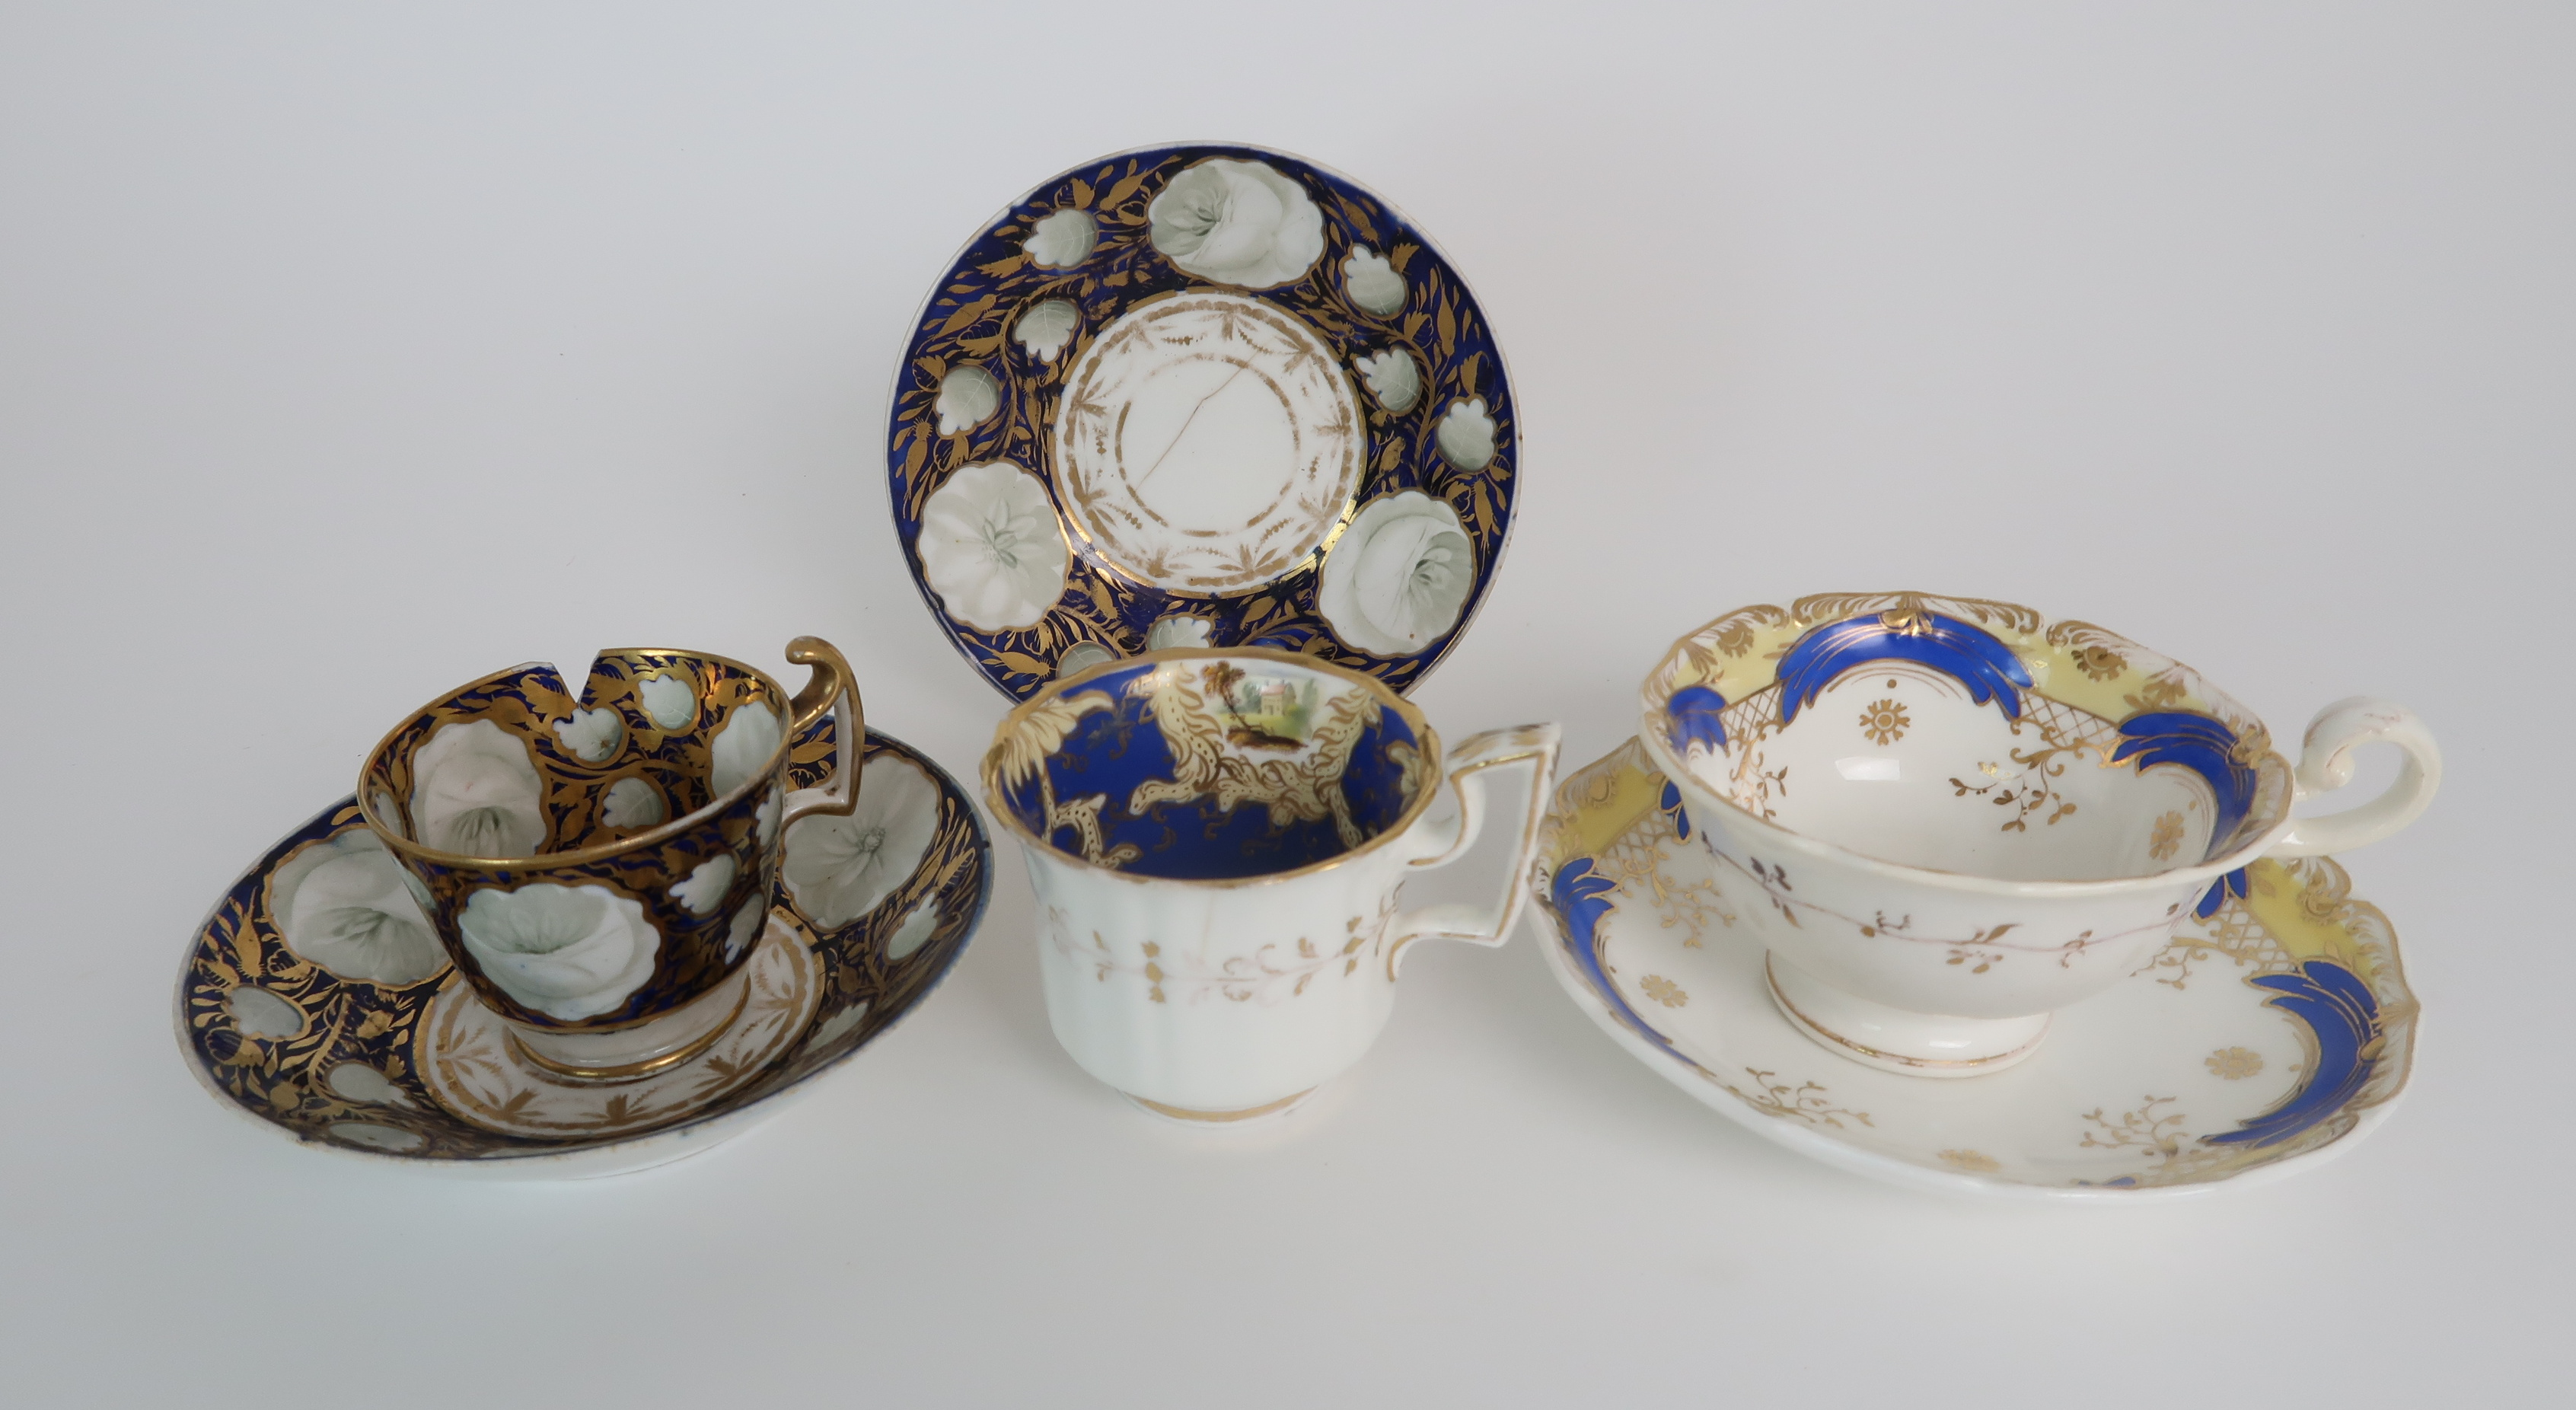 A COLLECTION OF 19TH CENTURY ENGLISH BLUE AND GILT DECORATED TEA AND COFFEE WARES including a - Image 18 of 23